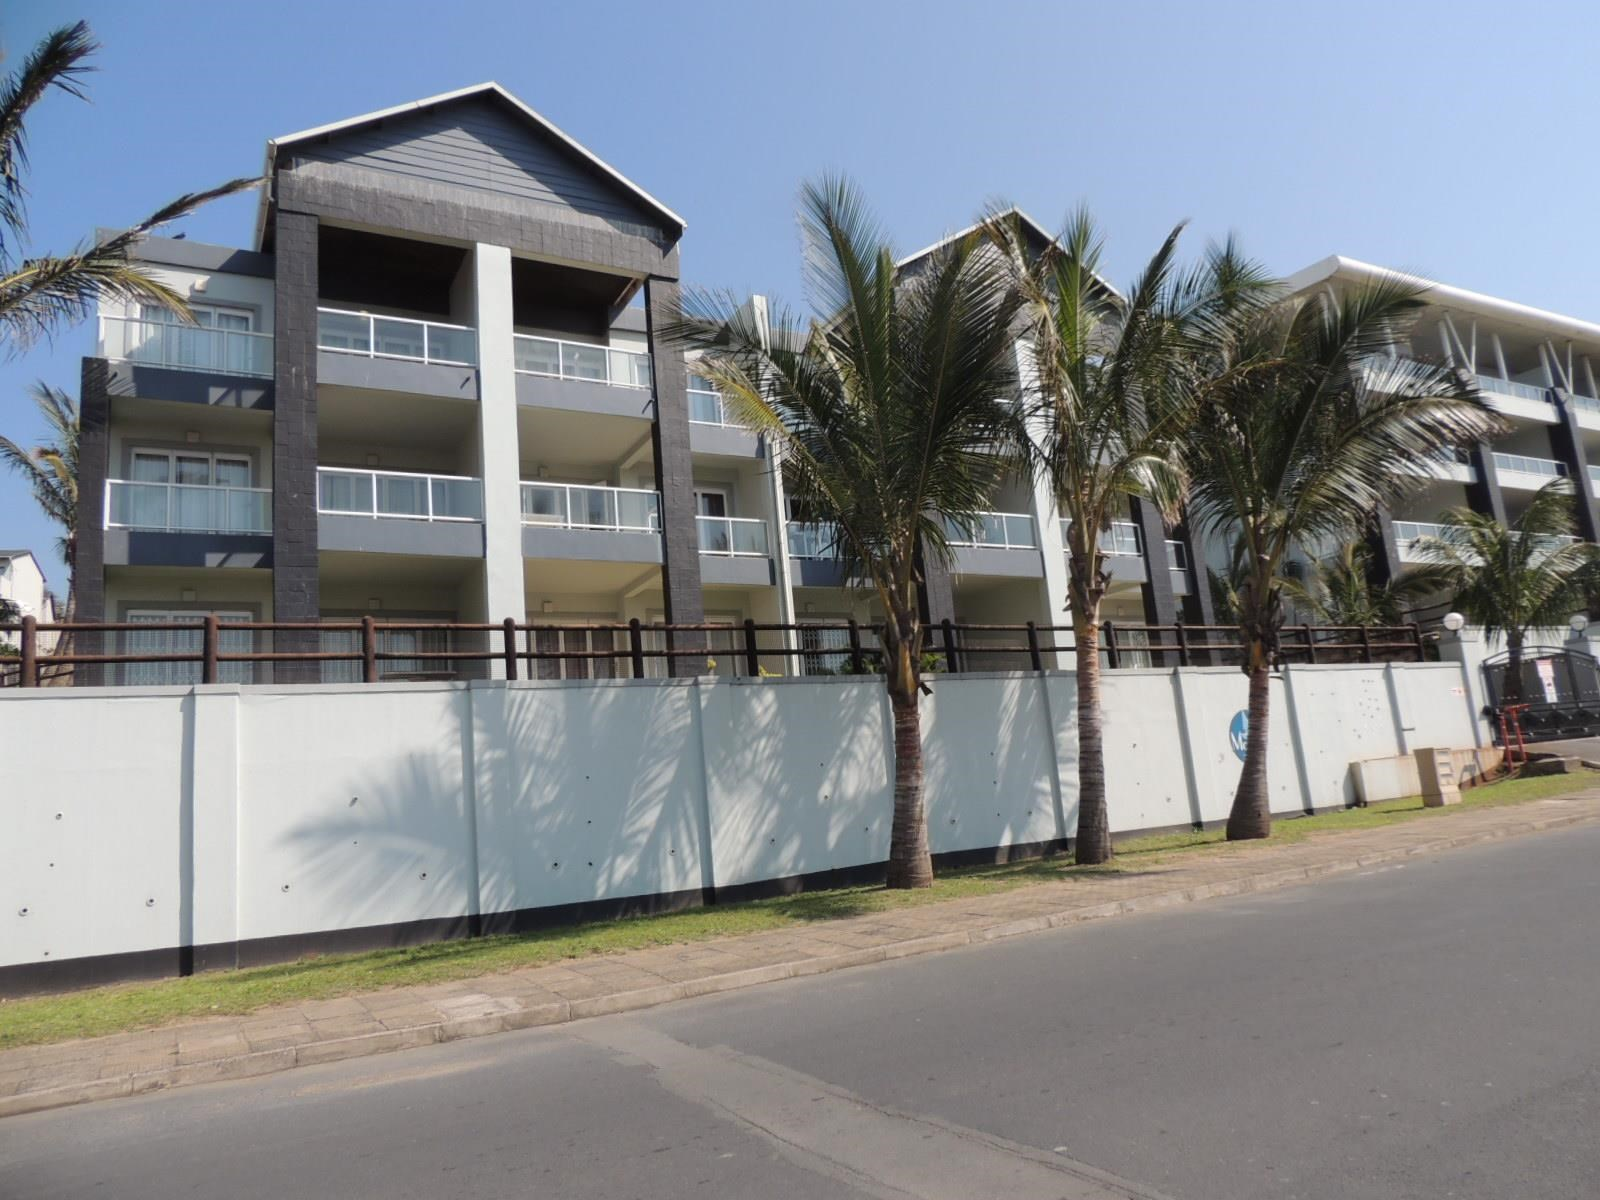 2 Bedroom Apartment for Sale in Margate